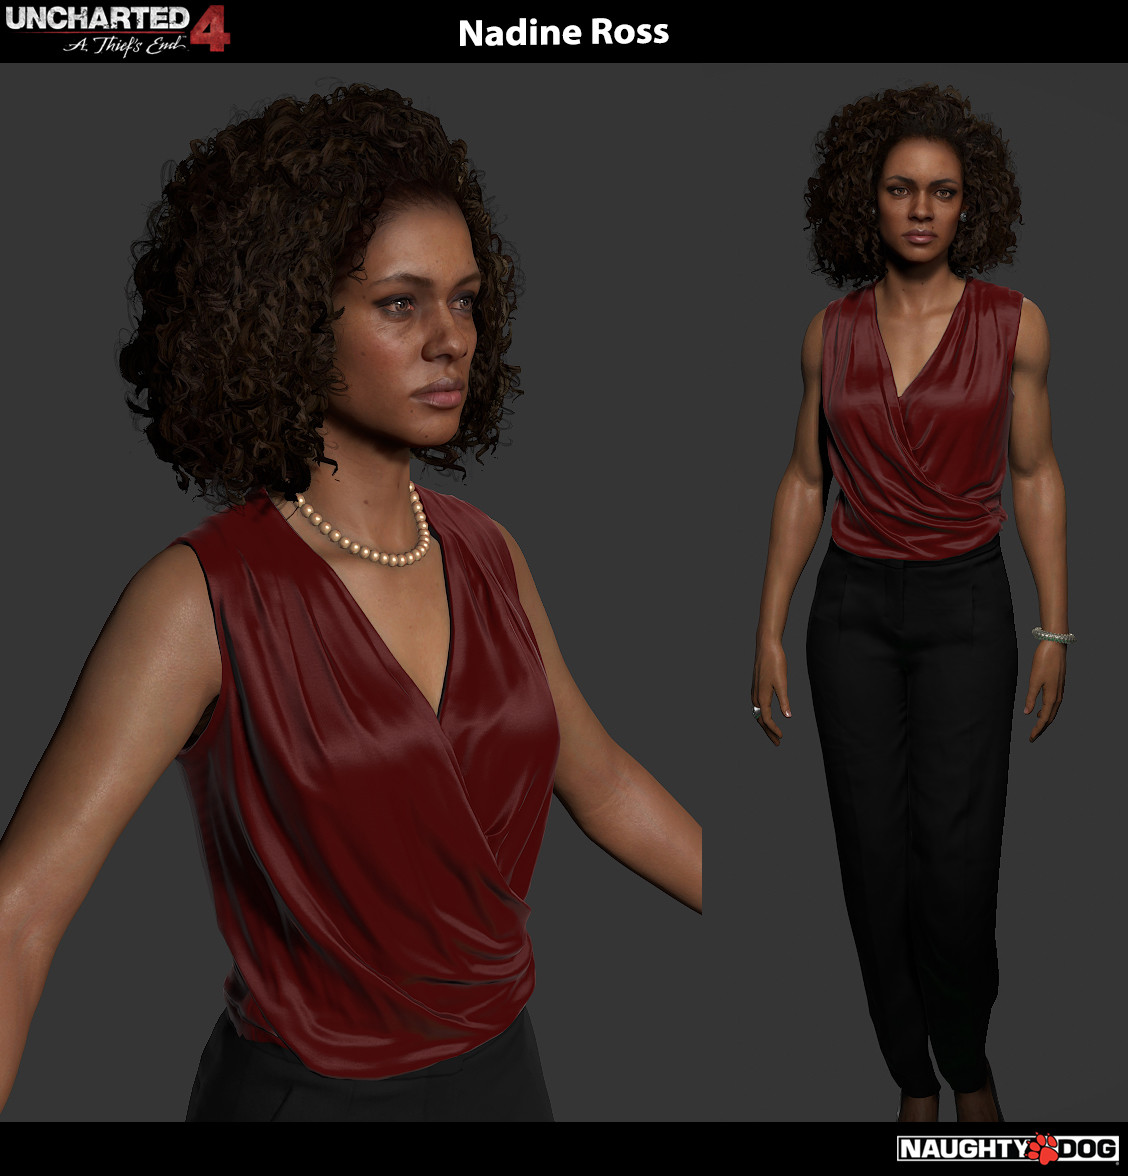 Nadine Ross Ross Nadine Uncharted The Lost Legacy Image